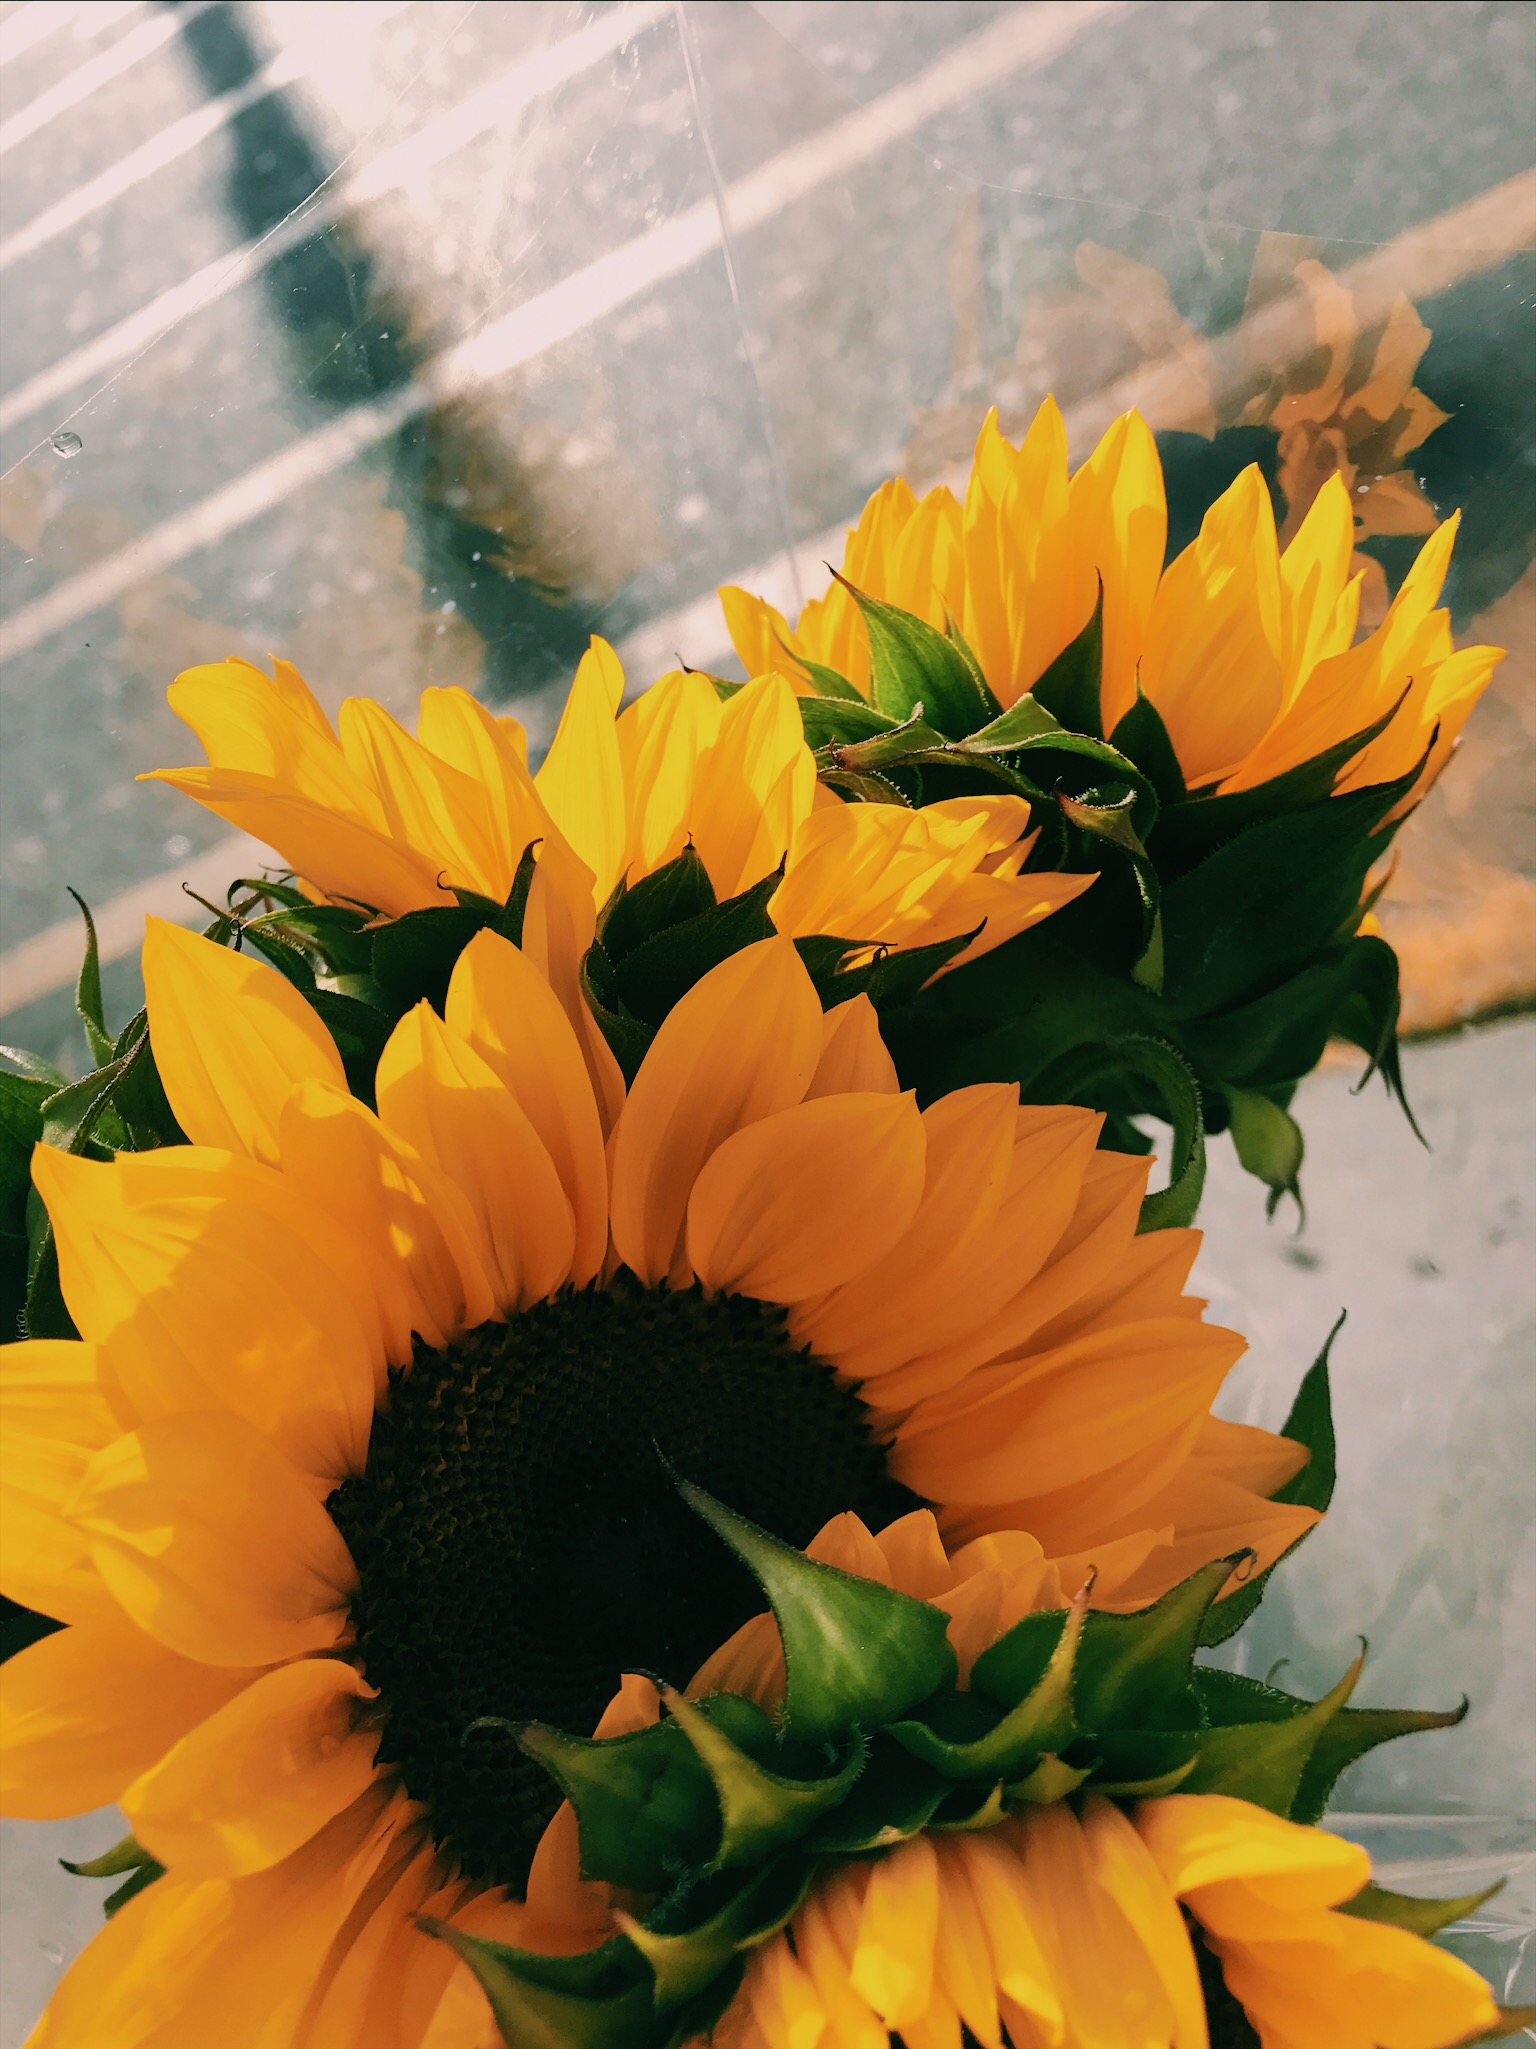 vsco yellow sunflowers flowers